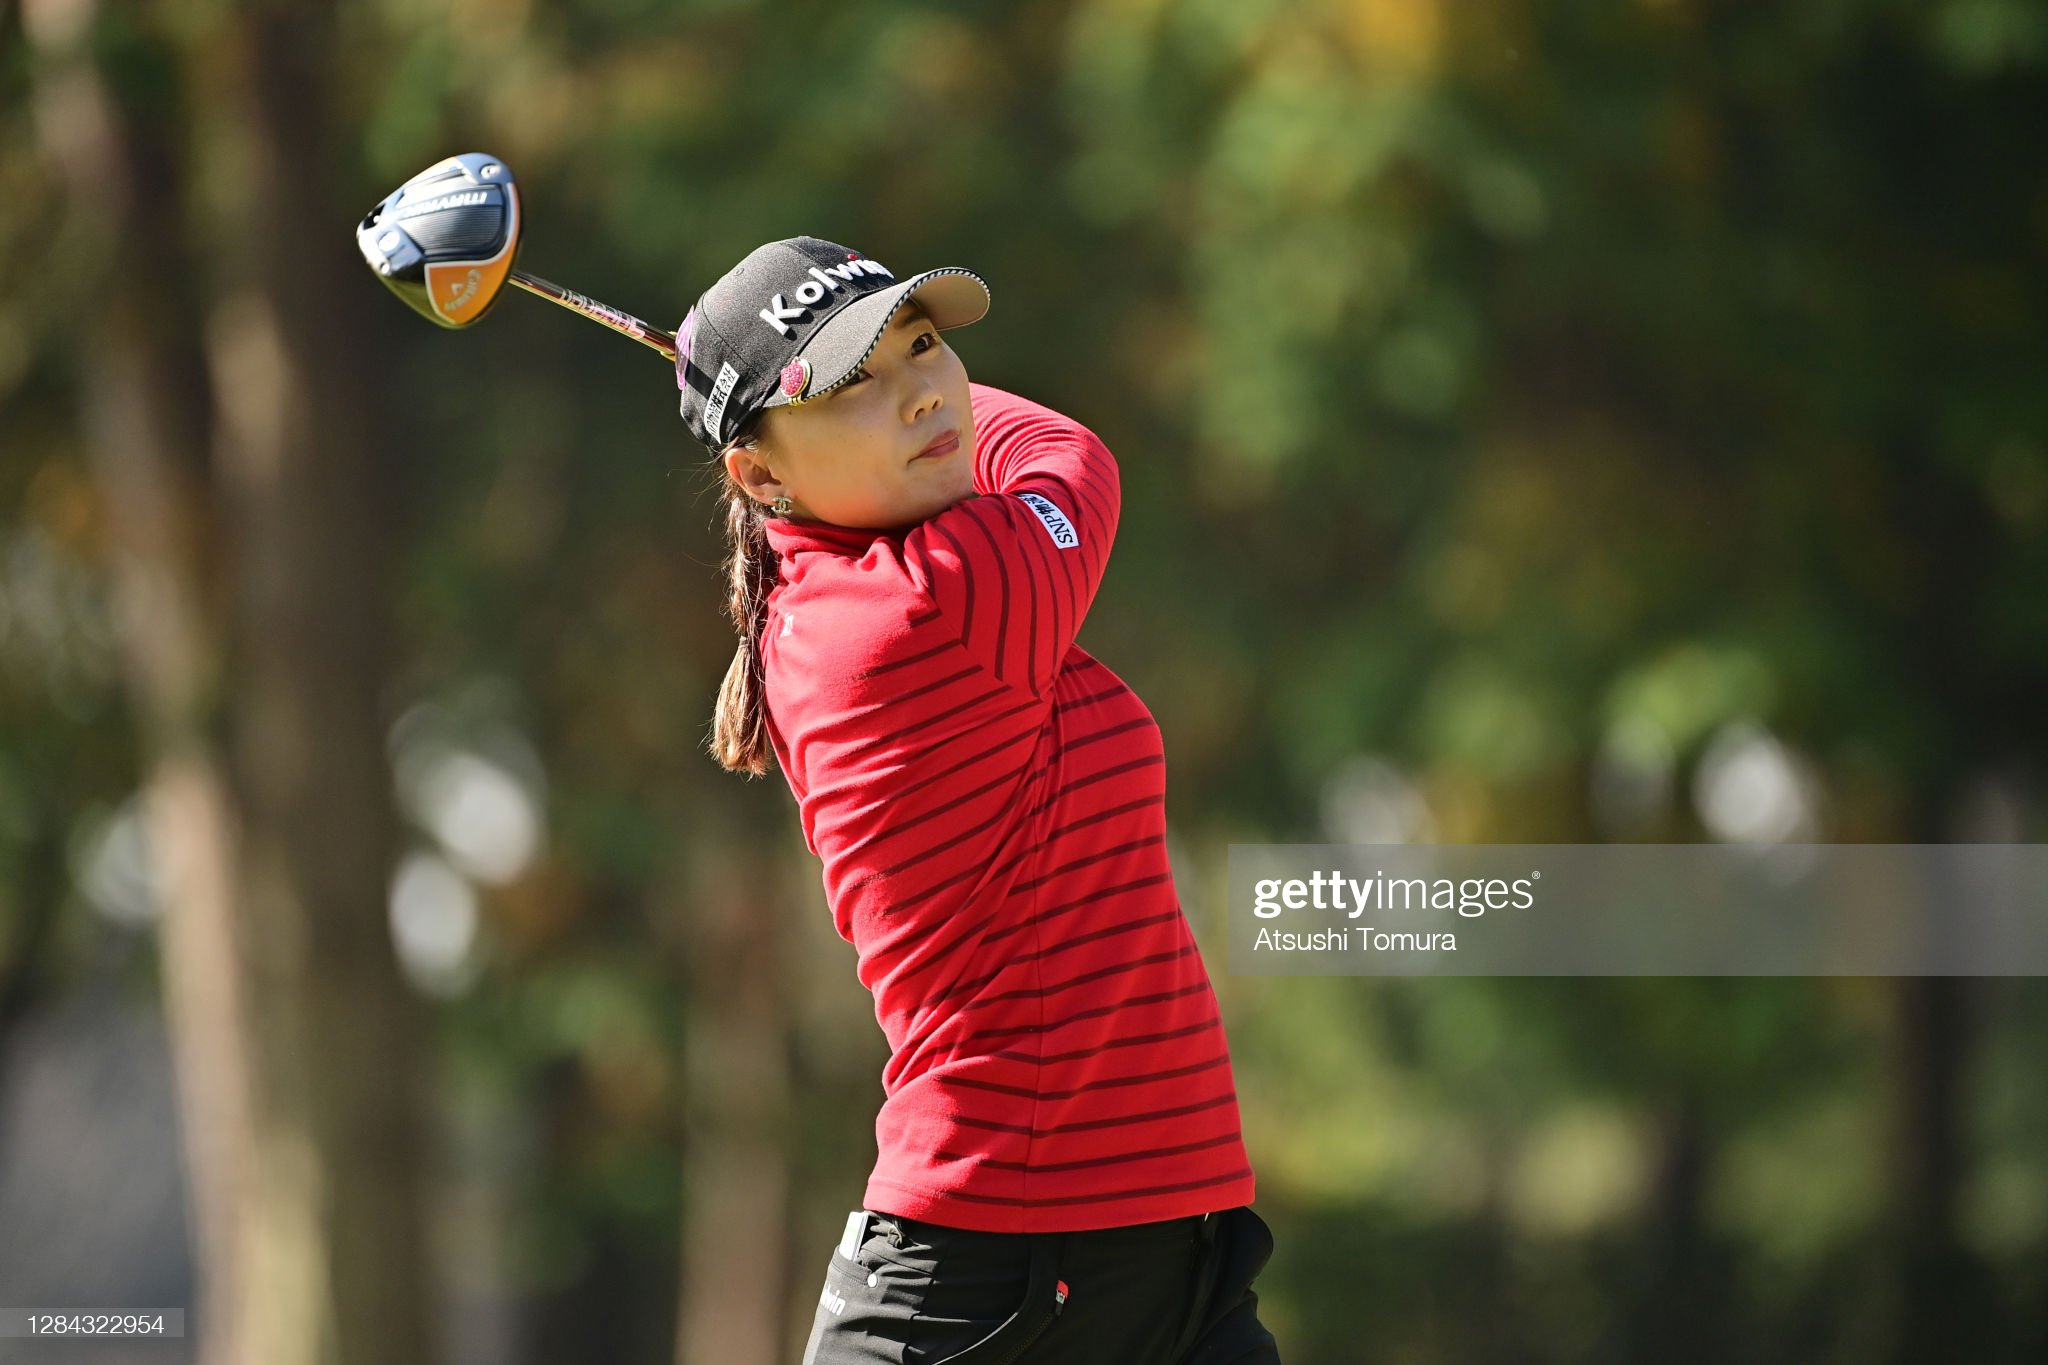 https://media.gettyimages.com/photos/nari-lee-of-south-korea-hits-her-tee-shot-on-the-9th-hole-during-the-picture-id1284322954?s=2048x2048